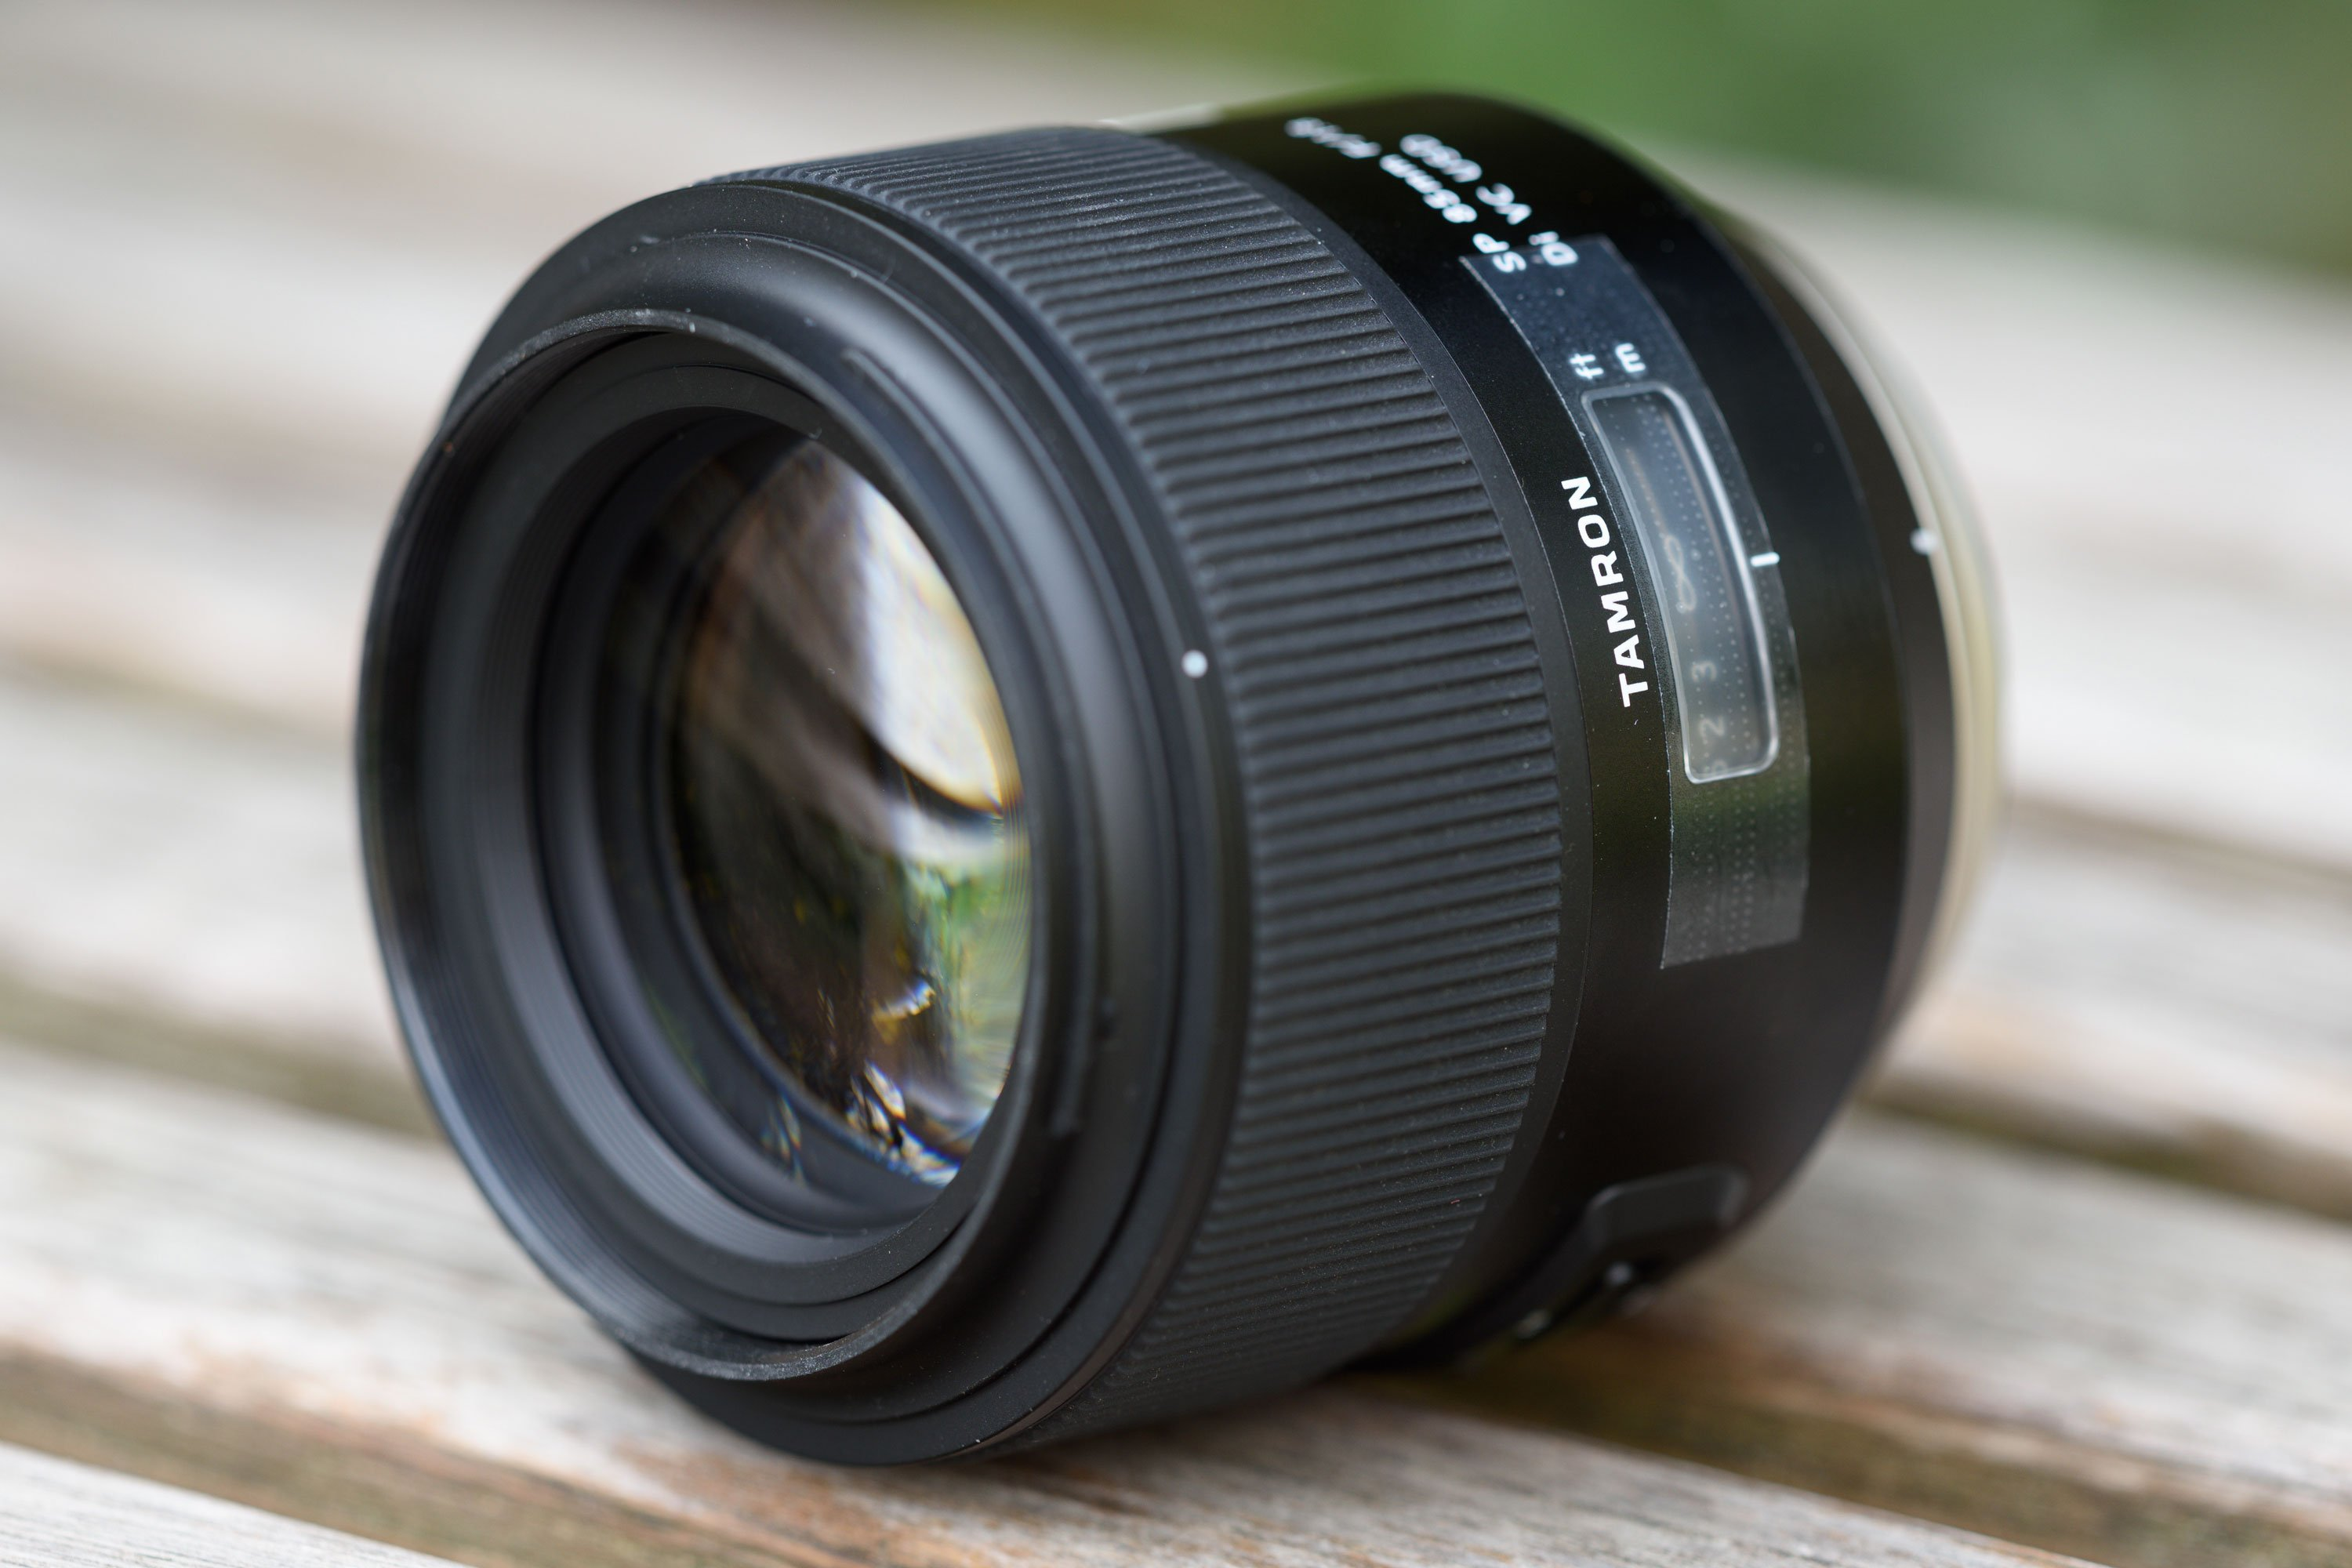 Tamron 85mm f1.8 VC review & Best Canon Portrait Lenses - | Cameralabs azcodes.com